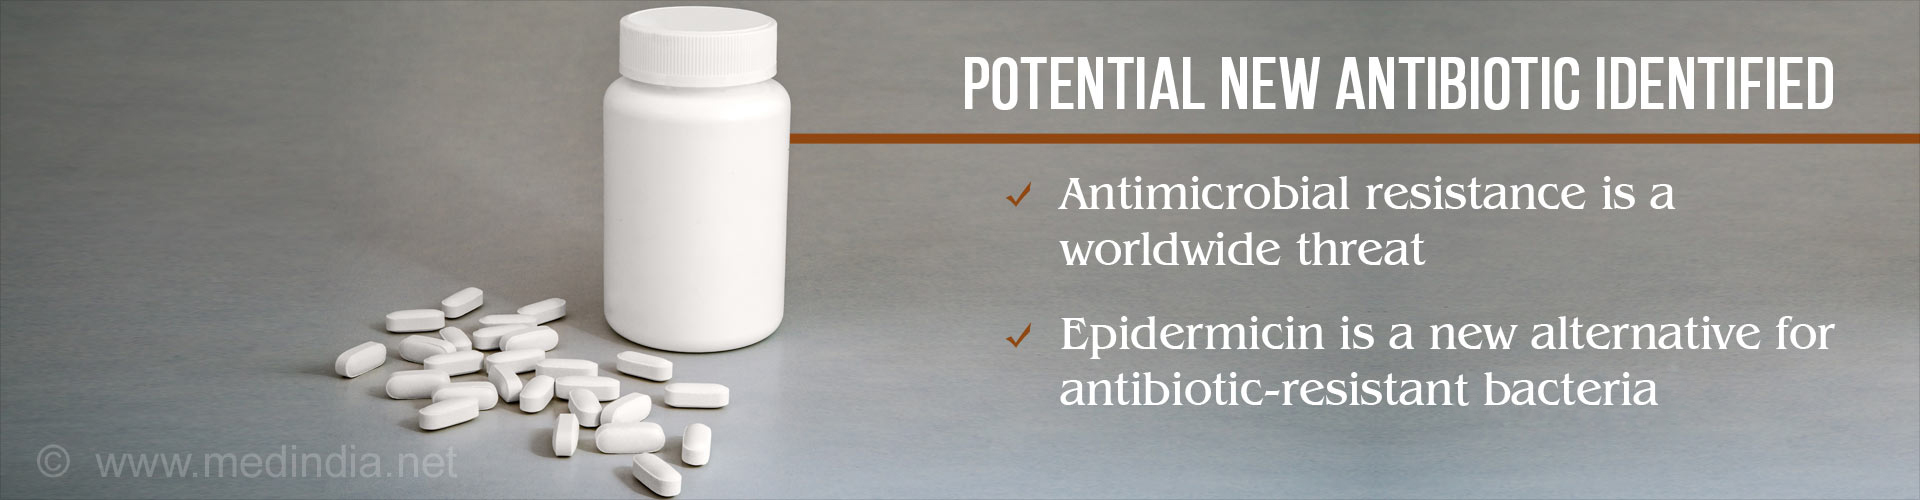 Epidermicin Could be a Potential New Antibiotic